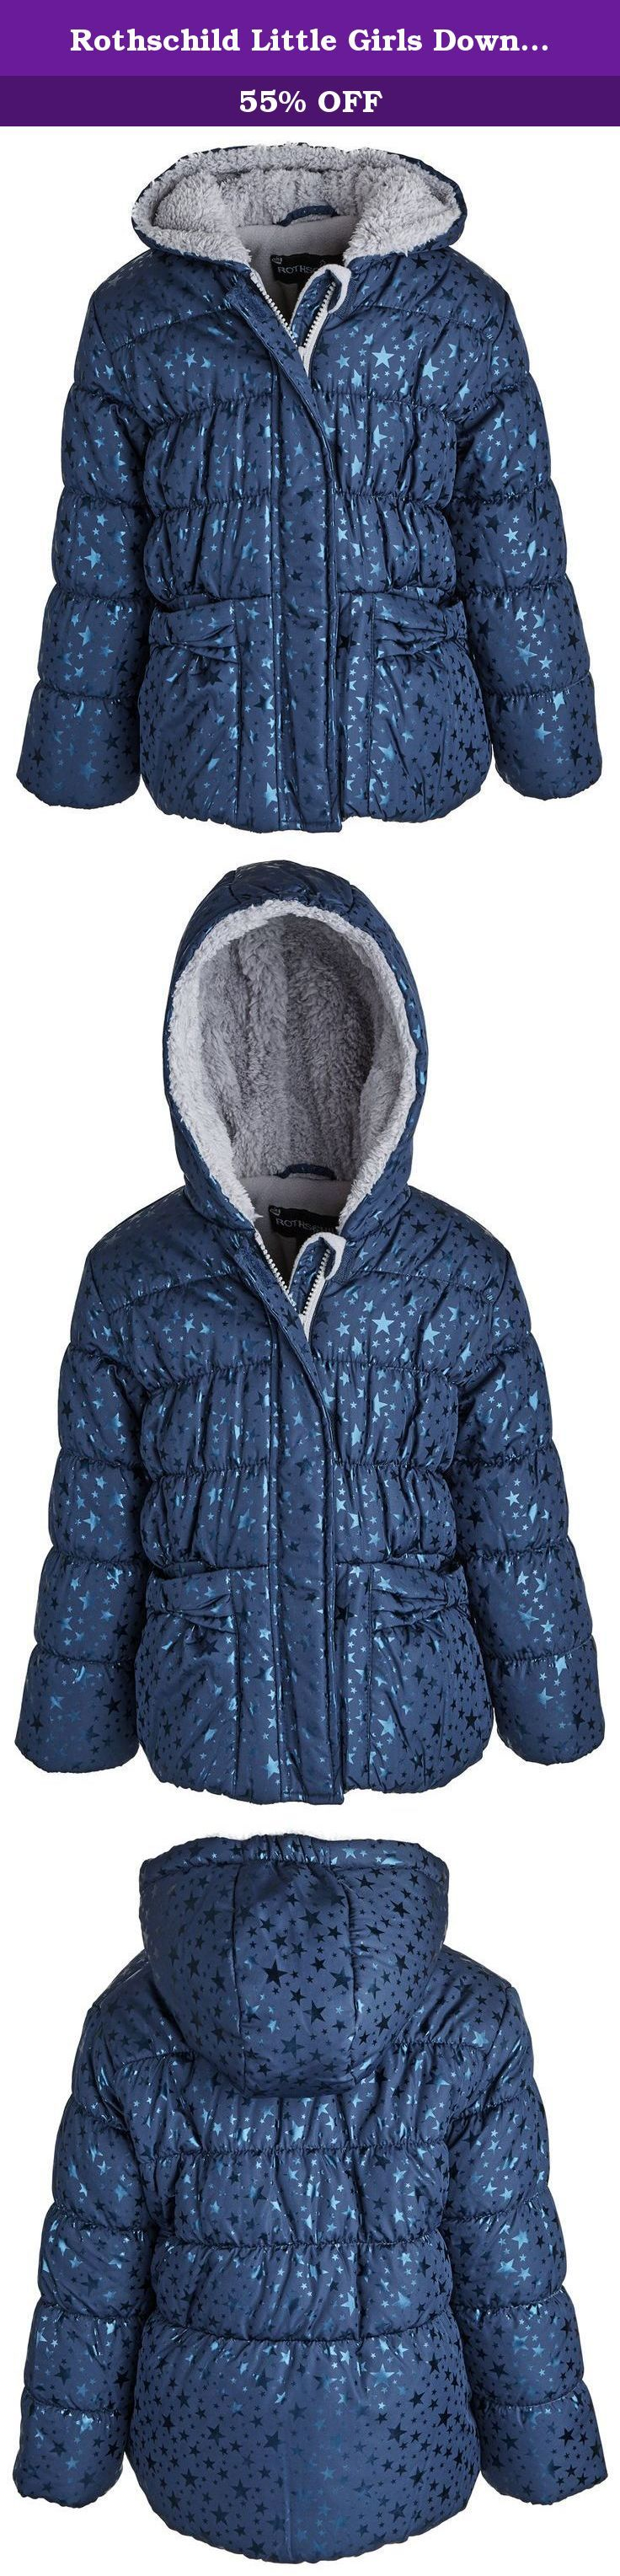 Rothschild Little Girls Down Alternative Fleece Winter Puffer Bubble Jacket Coat - Sapphire (size 2T). Bundle up your little angel in this lovely bubble jacket by Rothschild. Ultra soft back fleece lining along with its faux fur lined hood and thick filling will definitely help her cope those extreme weathers. All over star foil print and front bow pockets will surely please moms and daughters taste alike. Available in colors rubylight and sapphire and in sizes 2T to 6X.